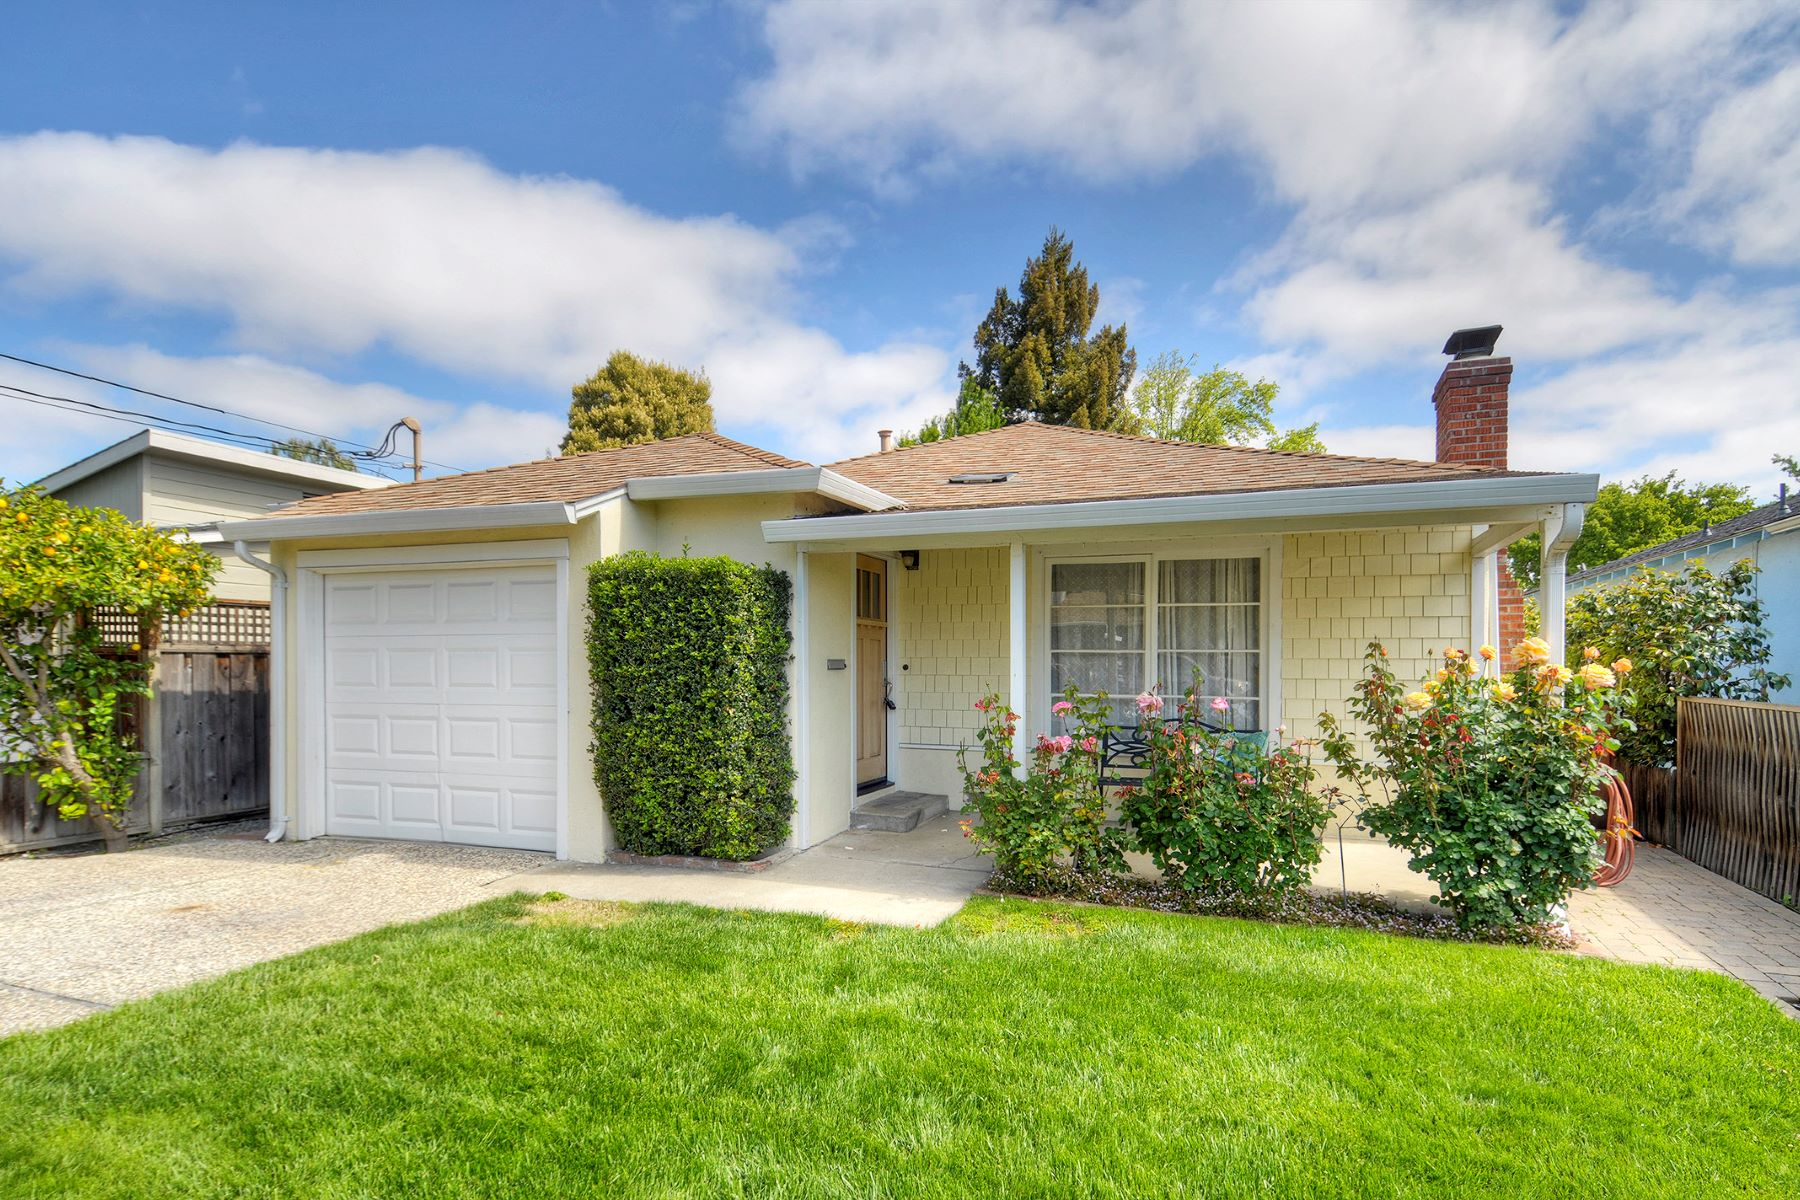 Single Family Homes for Sale at Stylish and Comfortable Home in White Oaks 1375 Geneva Avenue San Carlos, California 94070 United States